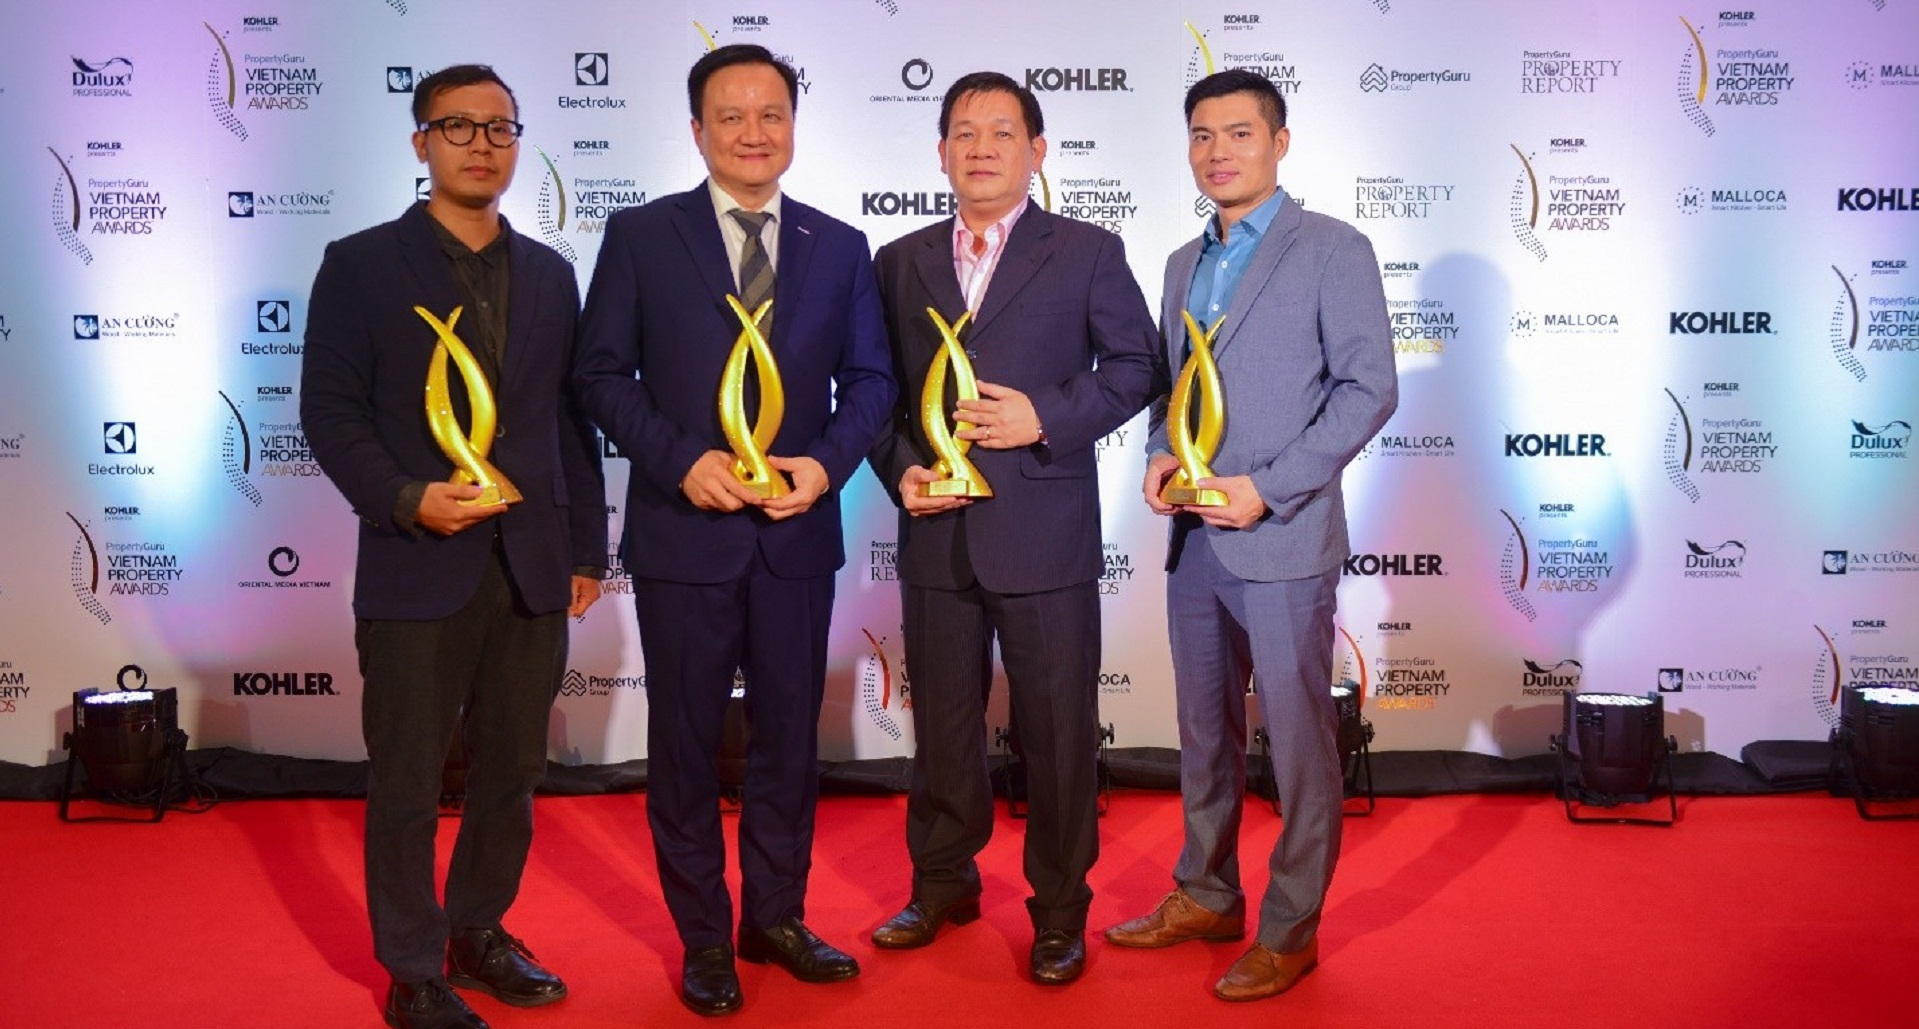 MIKGROUP WON GREAT AWARDS AT PROPERTYGURU VIETNAM PROPERTY AWARDS 2018